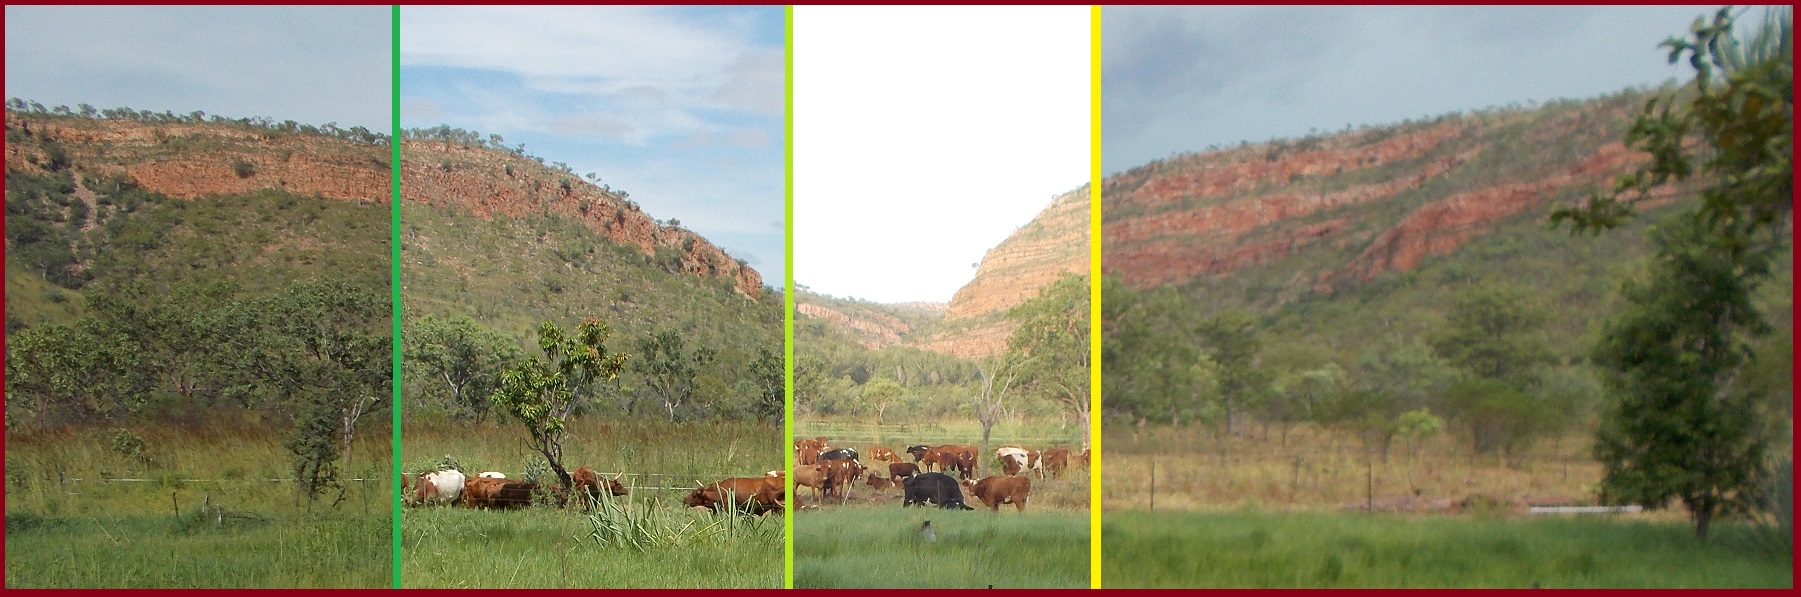 Using cattle to prepare the land for the coming dry-season